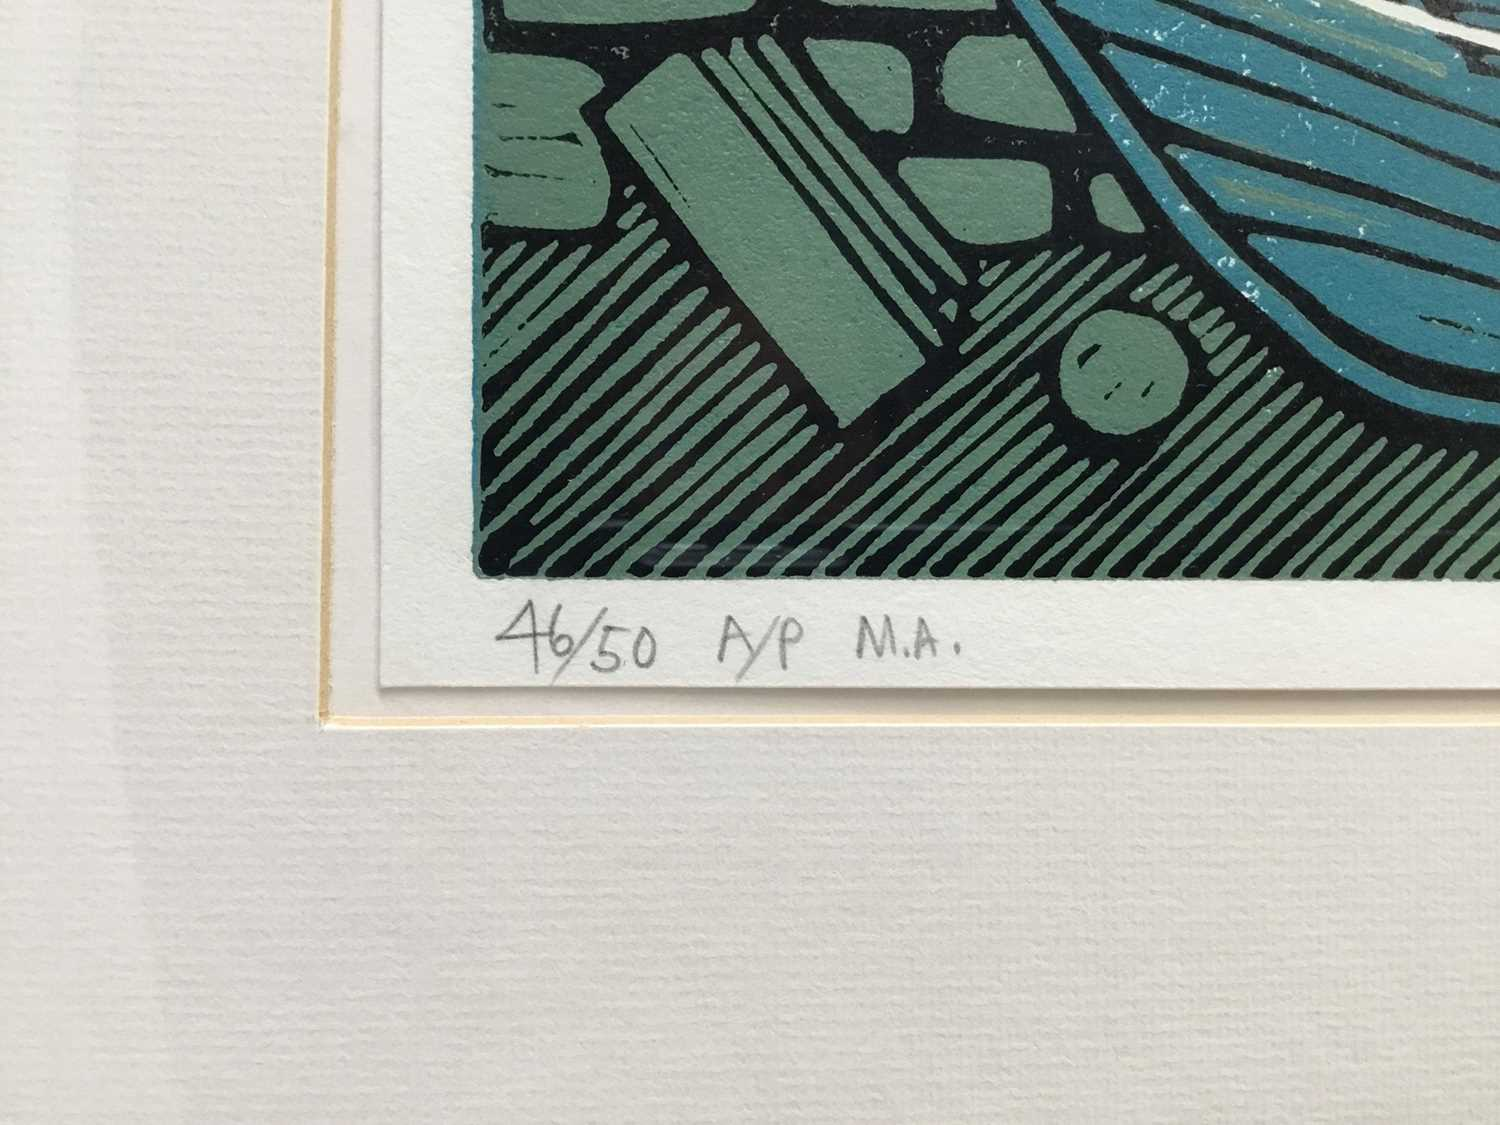 Nicholas Barnham (b. 1939) linocut in colours, Westing Unst, signed and numbered 46/50 A/P, 20 x 36c - Image 4 of 7